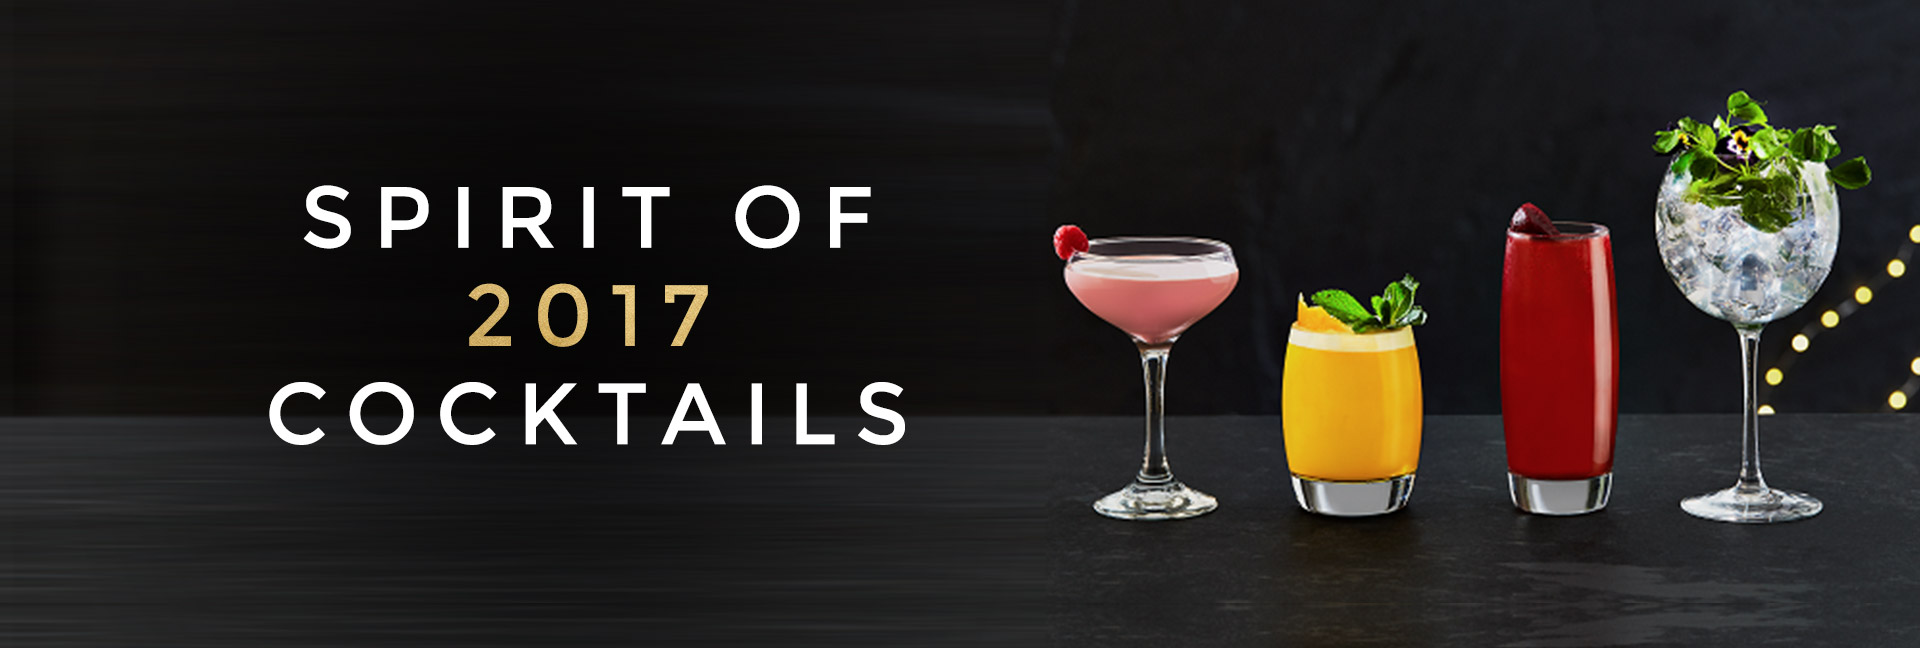 Spirit of 2017 cocktails at All Bar One Liverpool Street